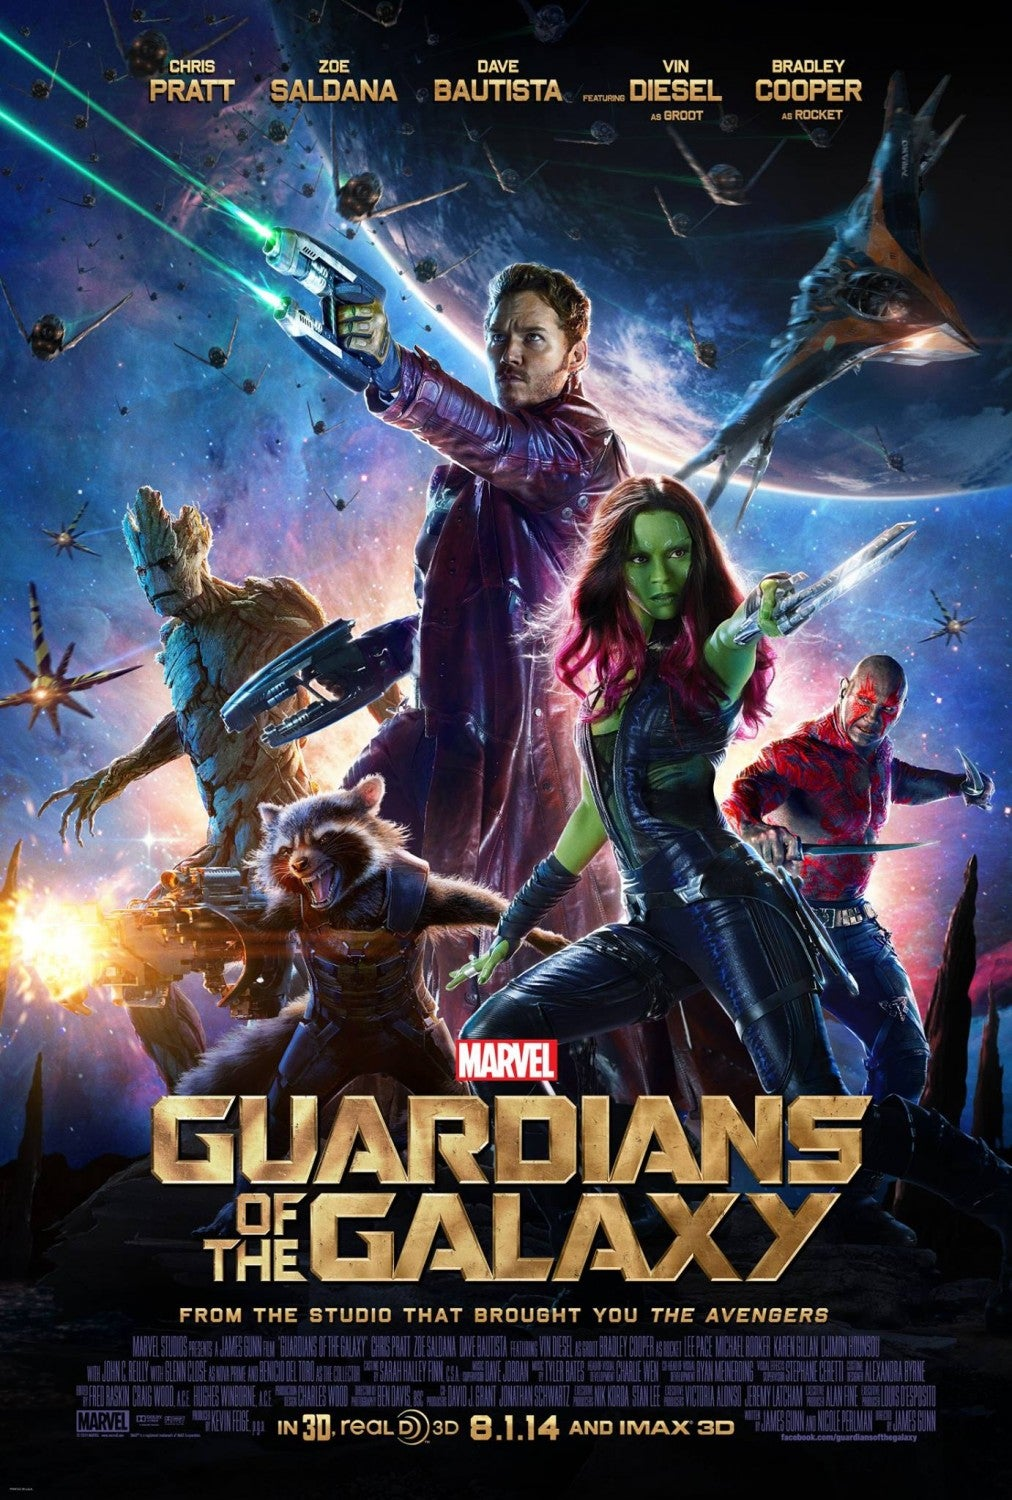 Guardians of the Galaxy Movie Poster - Marvel Cinematic Universe